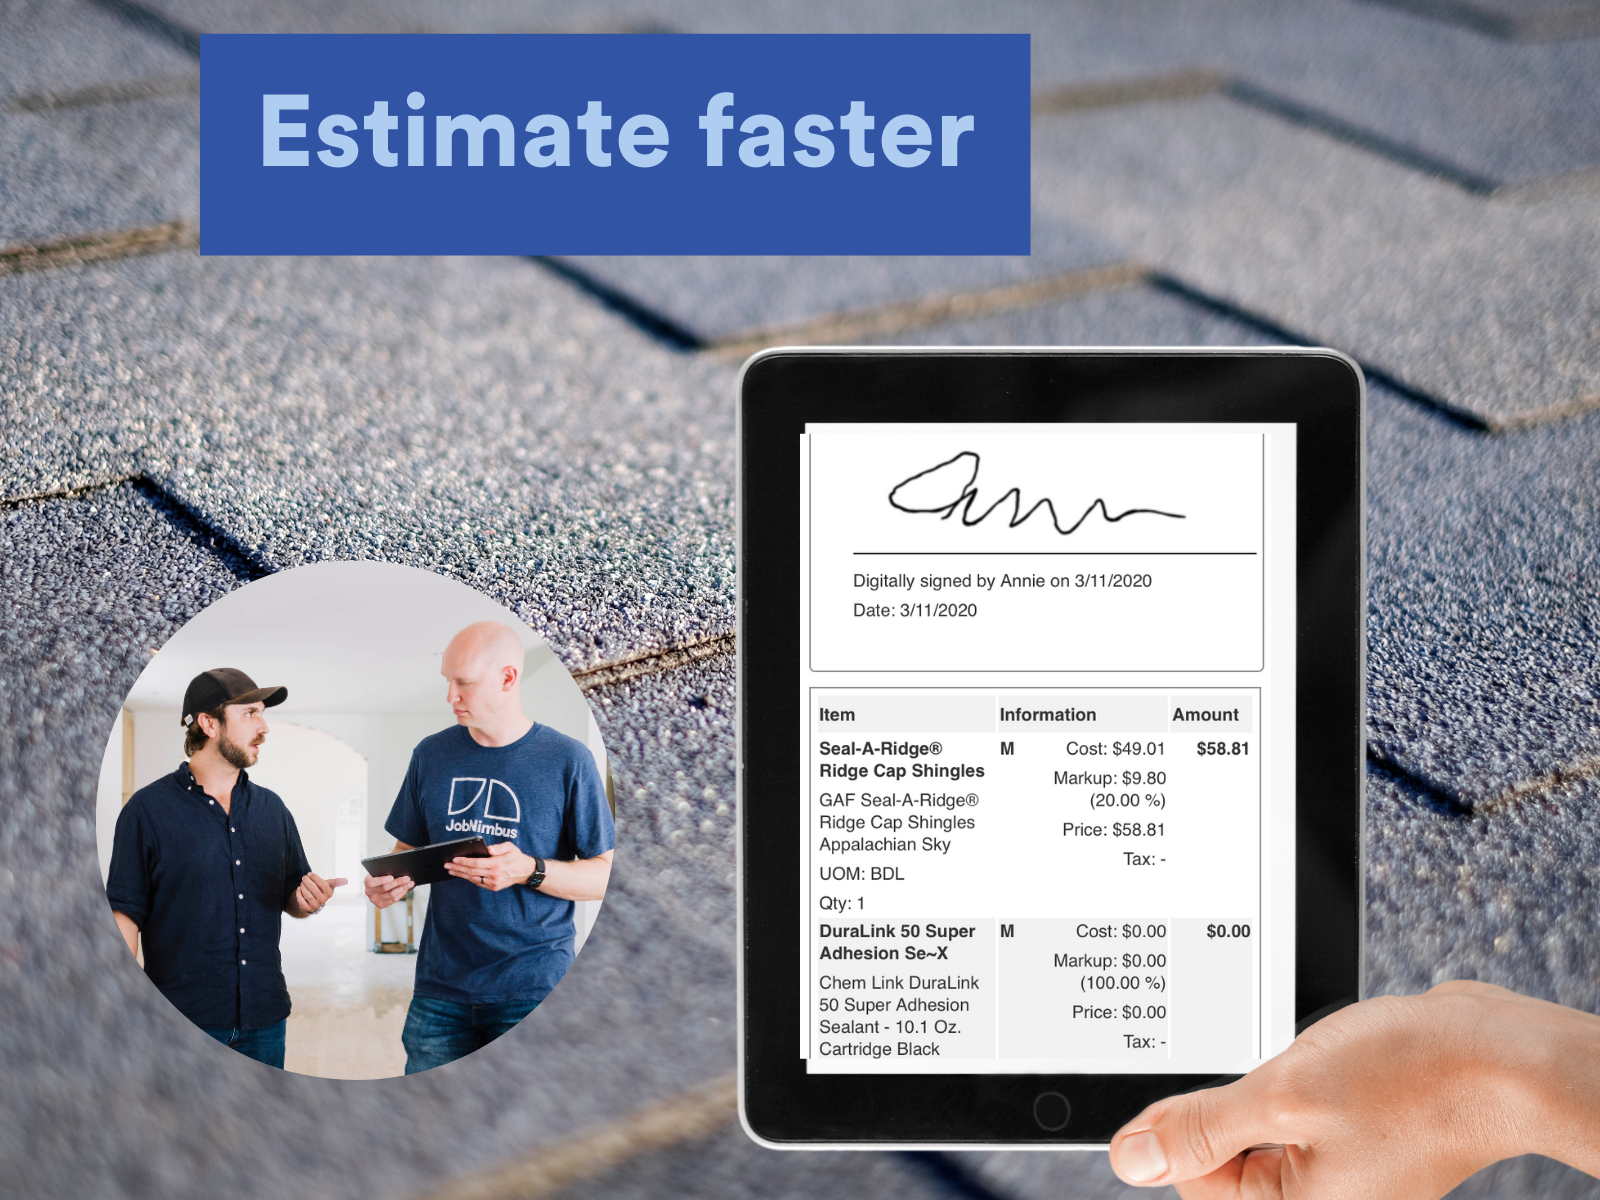 Estimate faster with JobNimbus, and be more professional